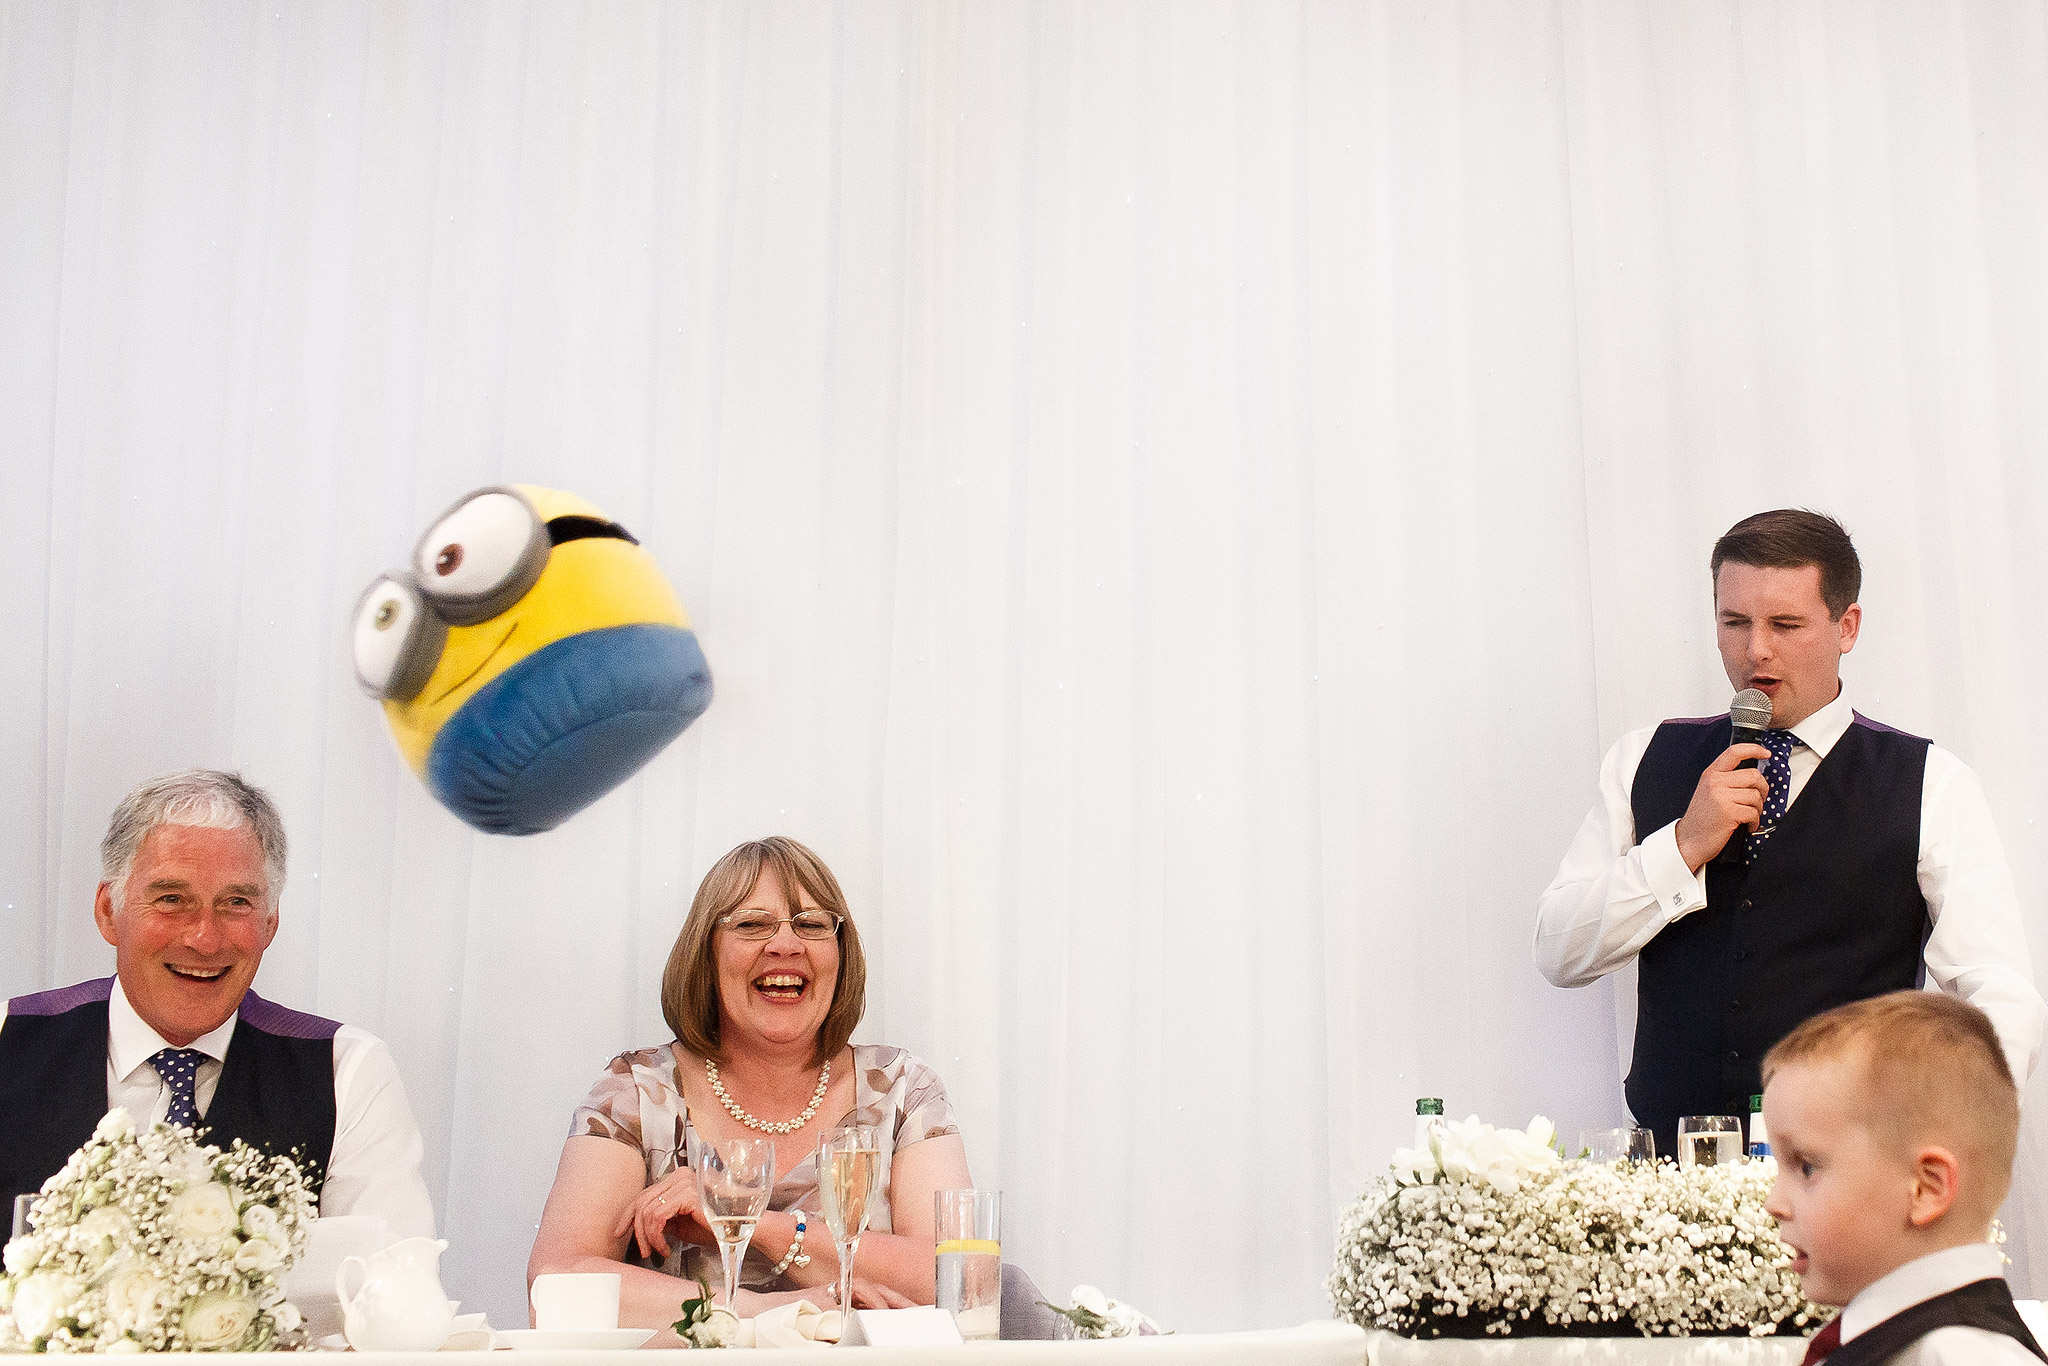 minion cuddly toy being thrown during wedding speeches